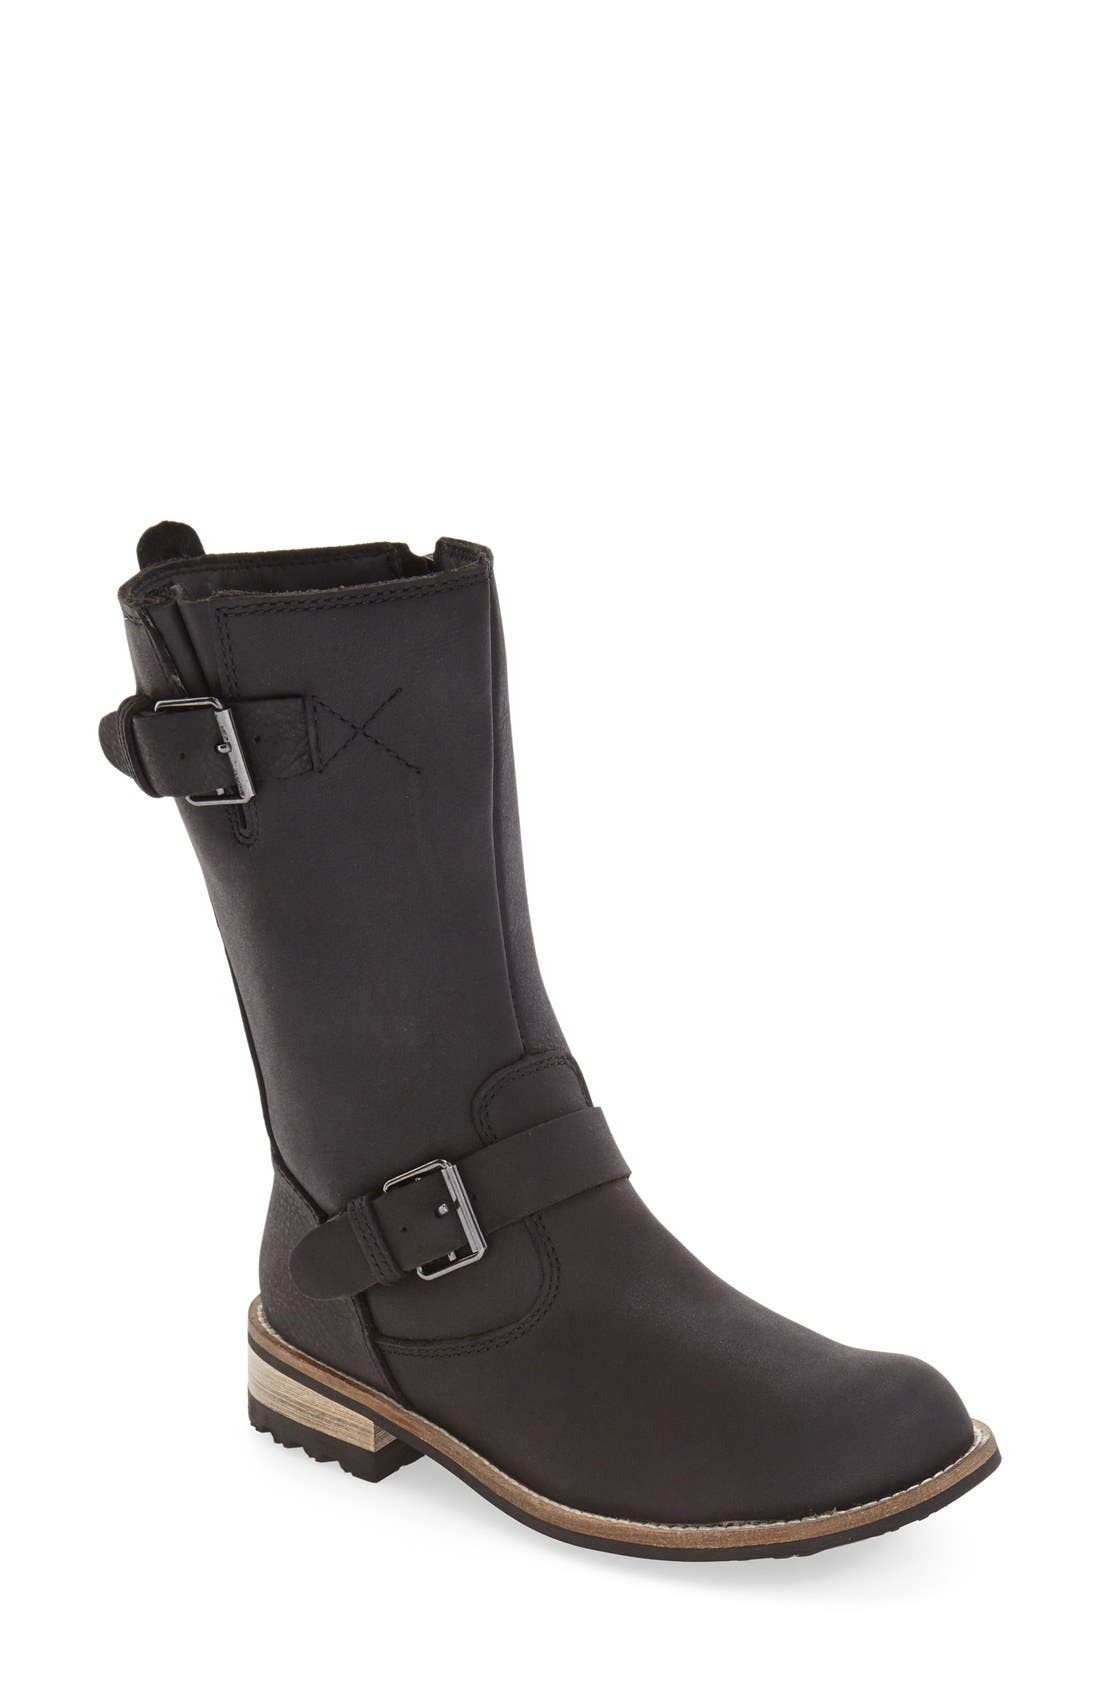 Main Image - Kodiak 'Alcona' Waterproof Boot (Women)